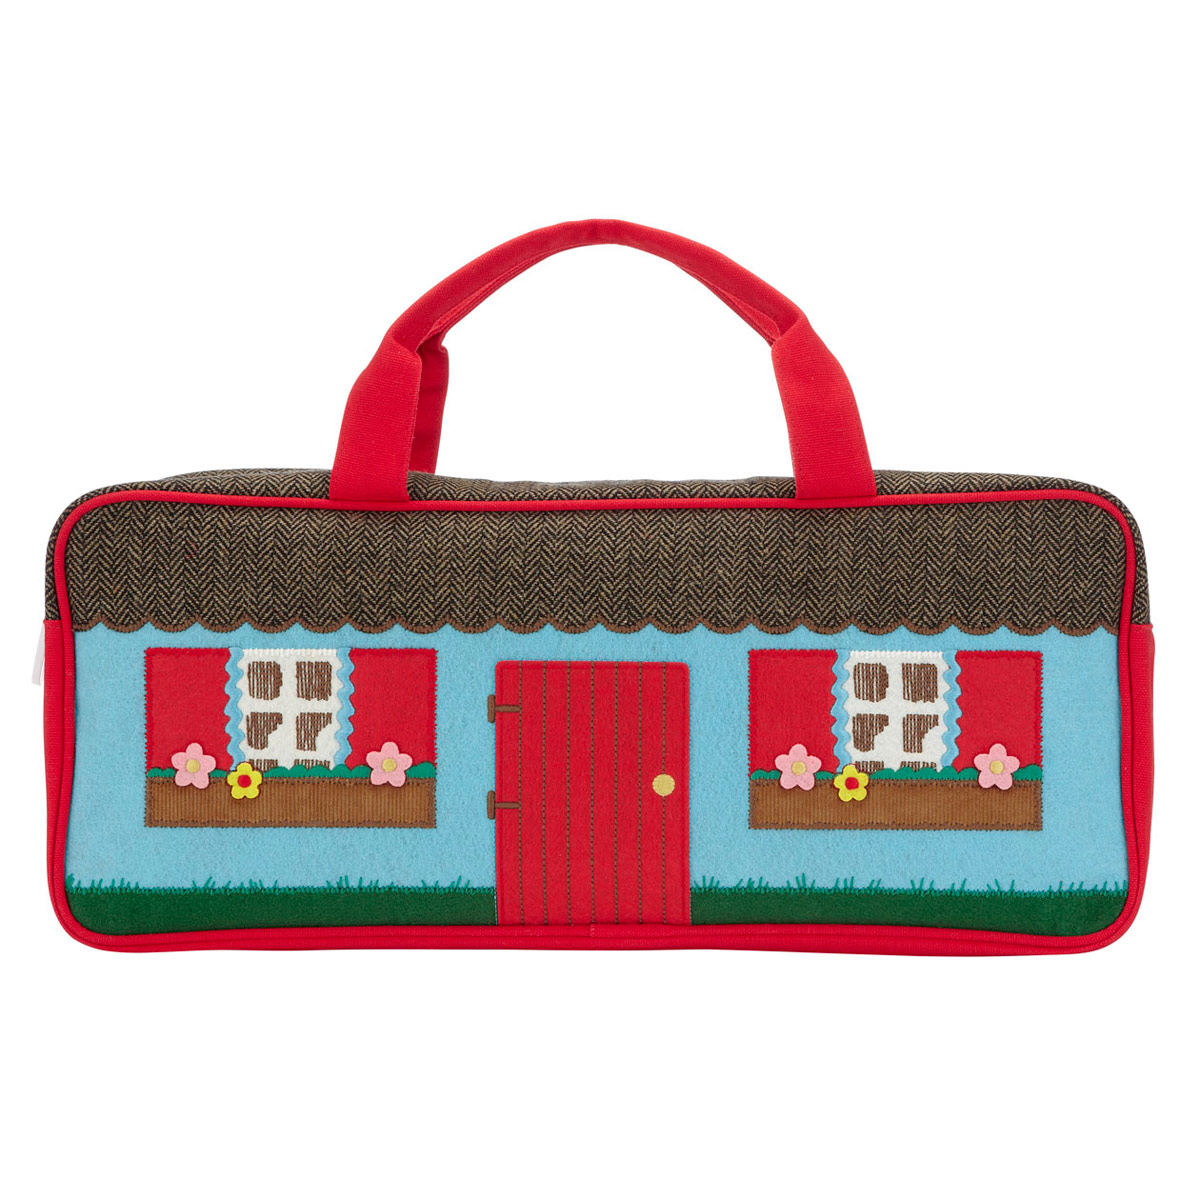 Knitting Bag : Cath Kidston Chalet Knitting Bag - Penny Royal Gifts